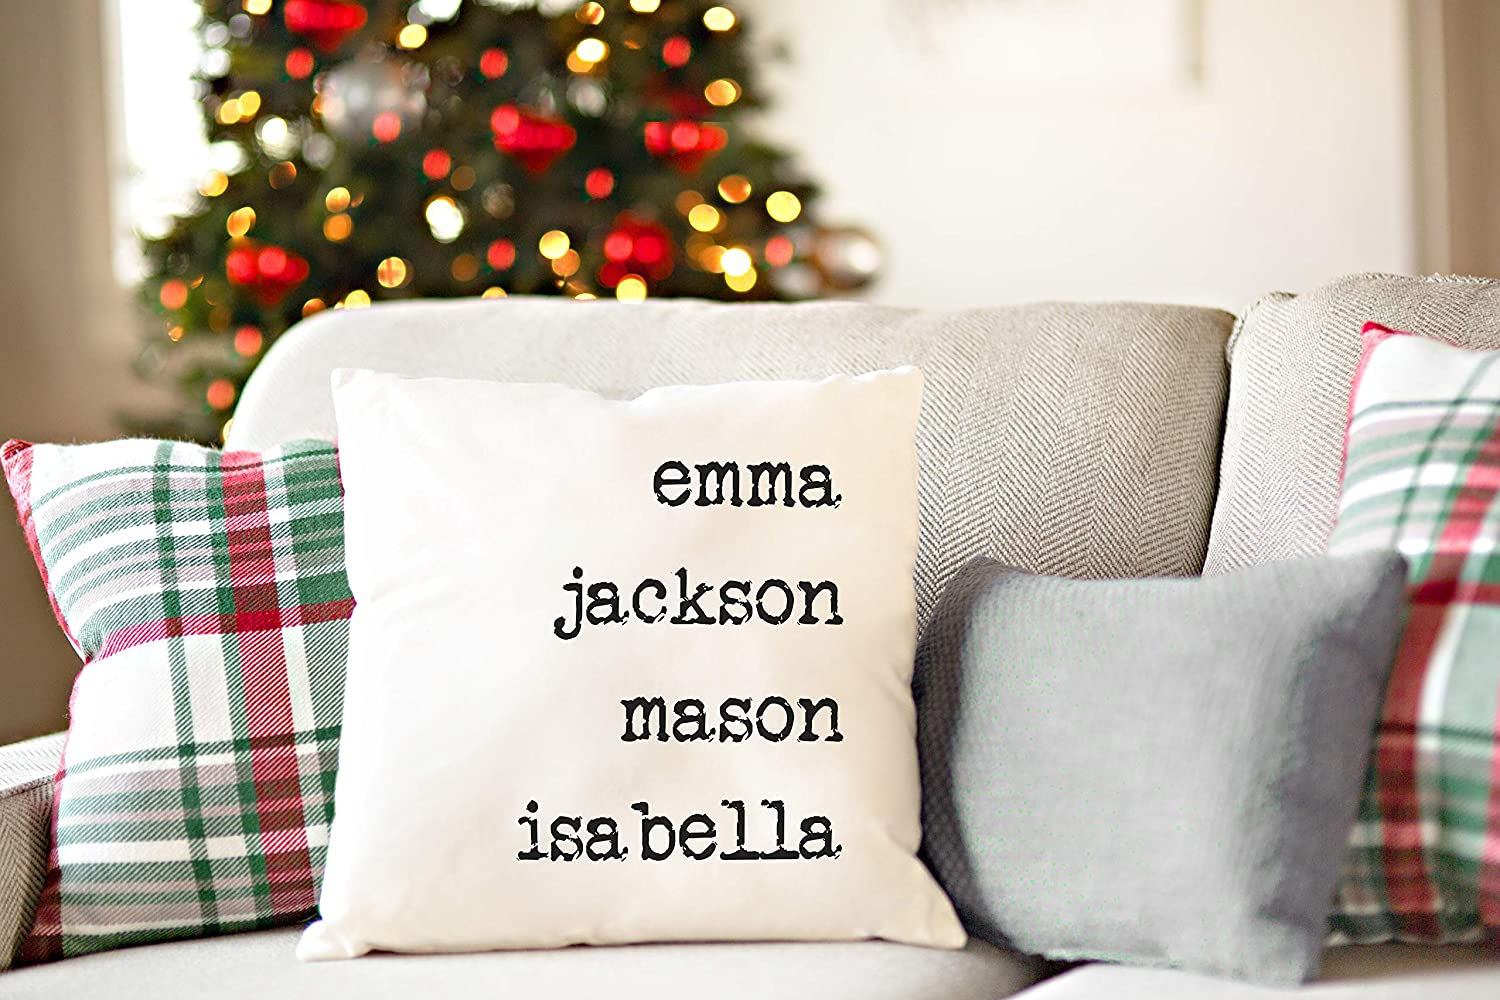 Qualtry Personalized Gift for Mom and Grandma, Also a Unique Warming Gift (1 Name) - Throw Pillow Covers Family House Decor 18 x 18 in, Unique Holiday for Grandparent, Sister, Wife, Couples